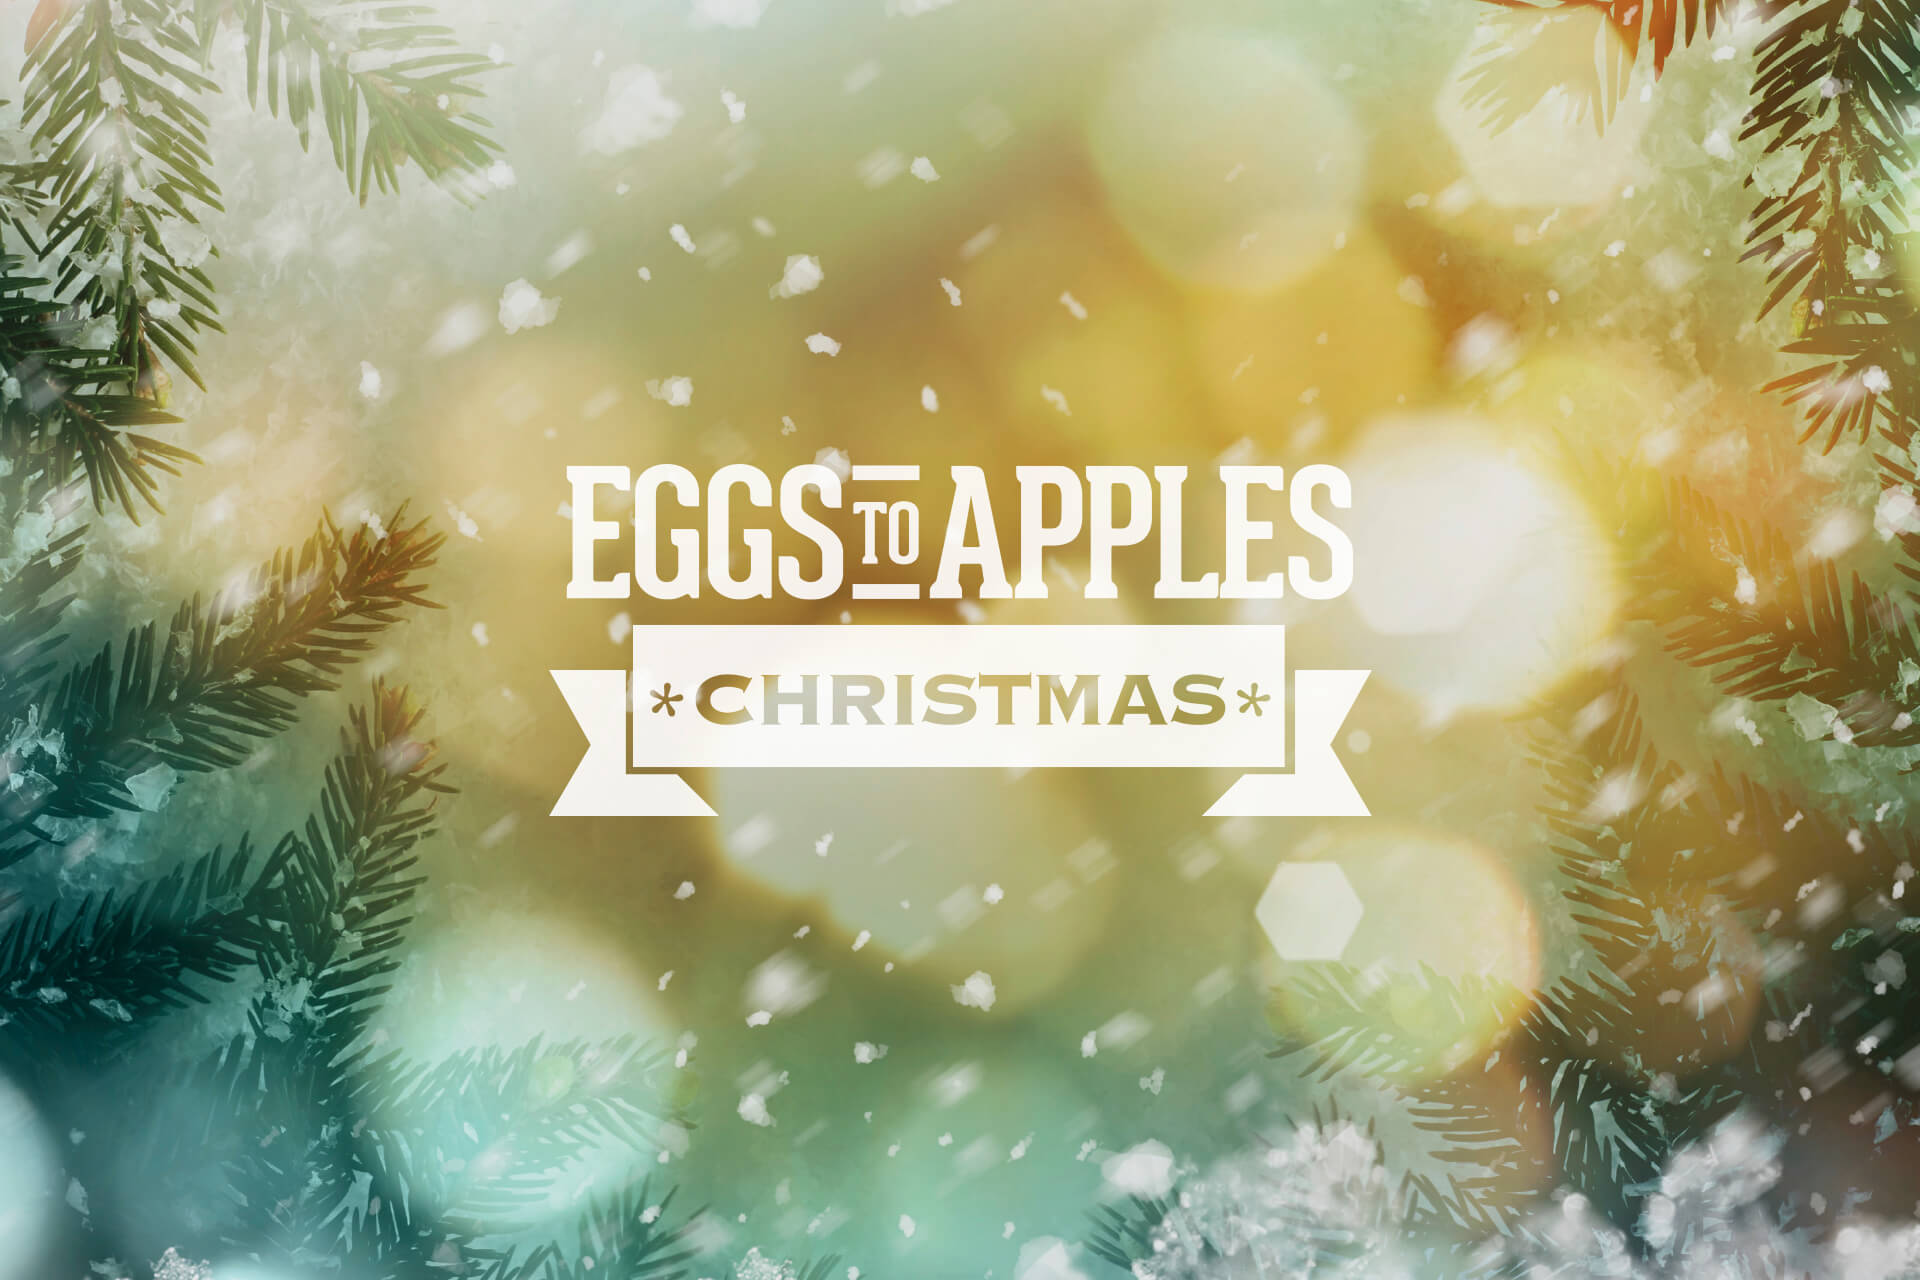 Christmas at Eggs To Apples